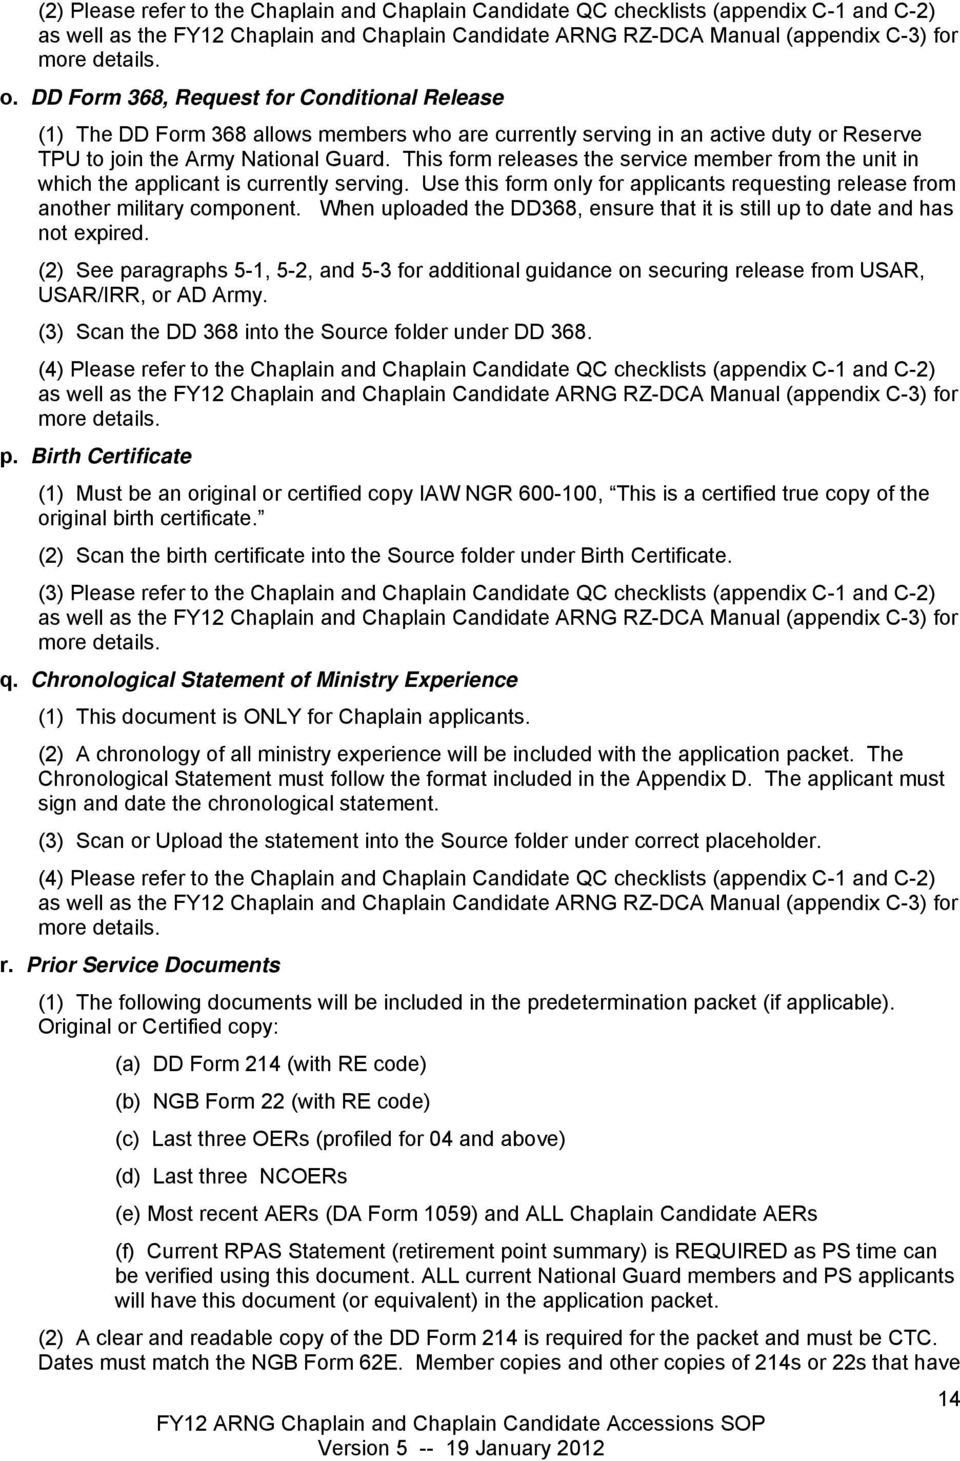 Fy12 army national guard standard operating procedures for chaplain this form releases the service member from the unit in which the applicant is currently serving thecheapjerseys Gallery